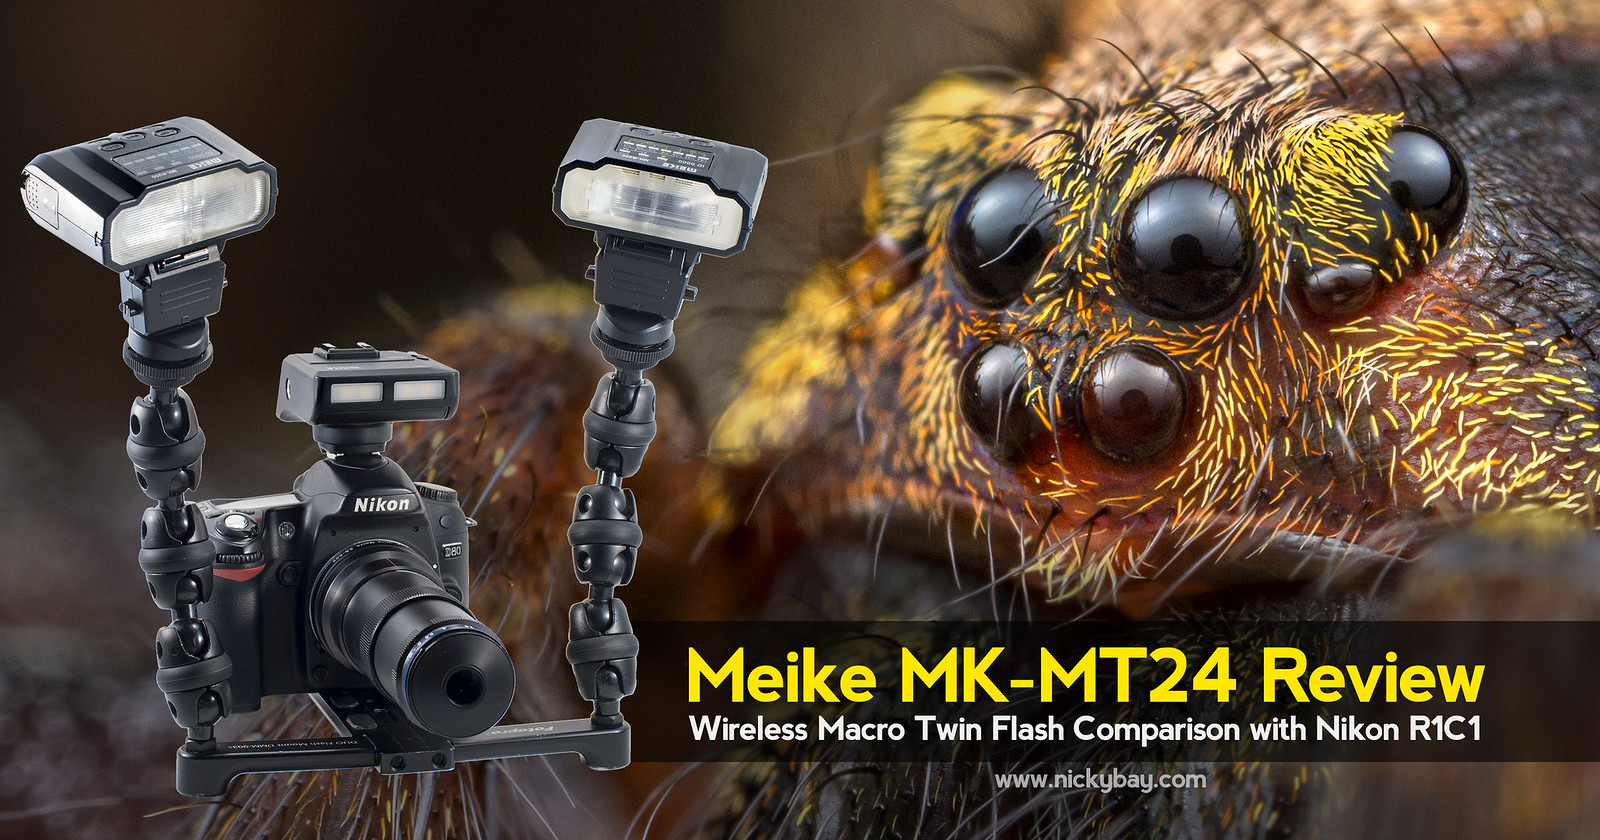 Meike MK-MT24 Review: Wireless Macro Twin Flash Comparison with Nikon R1C1